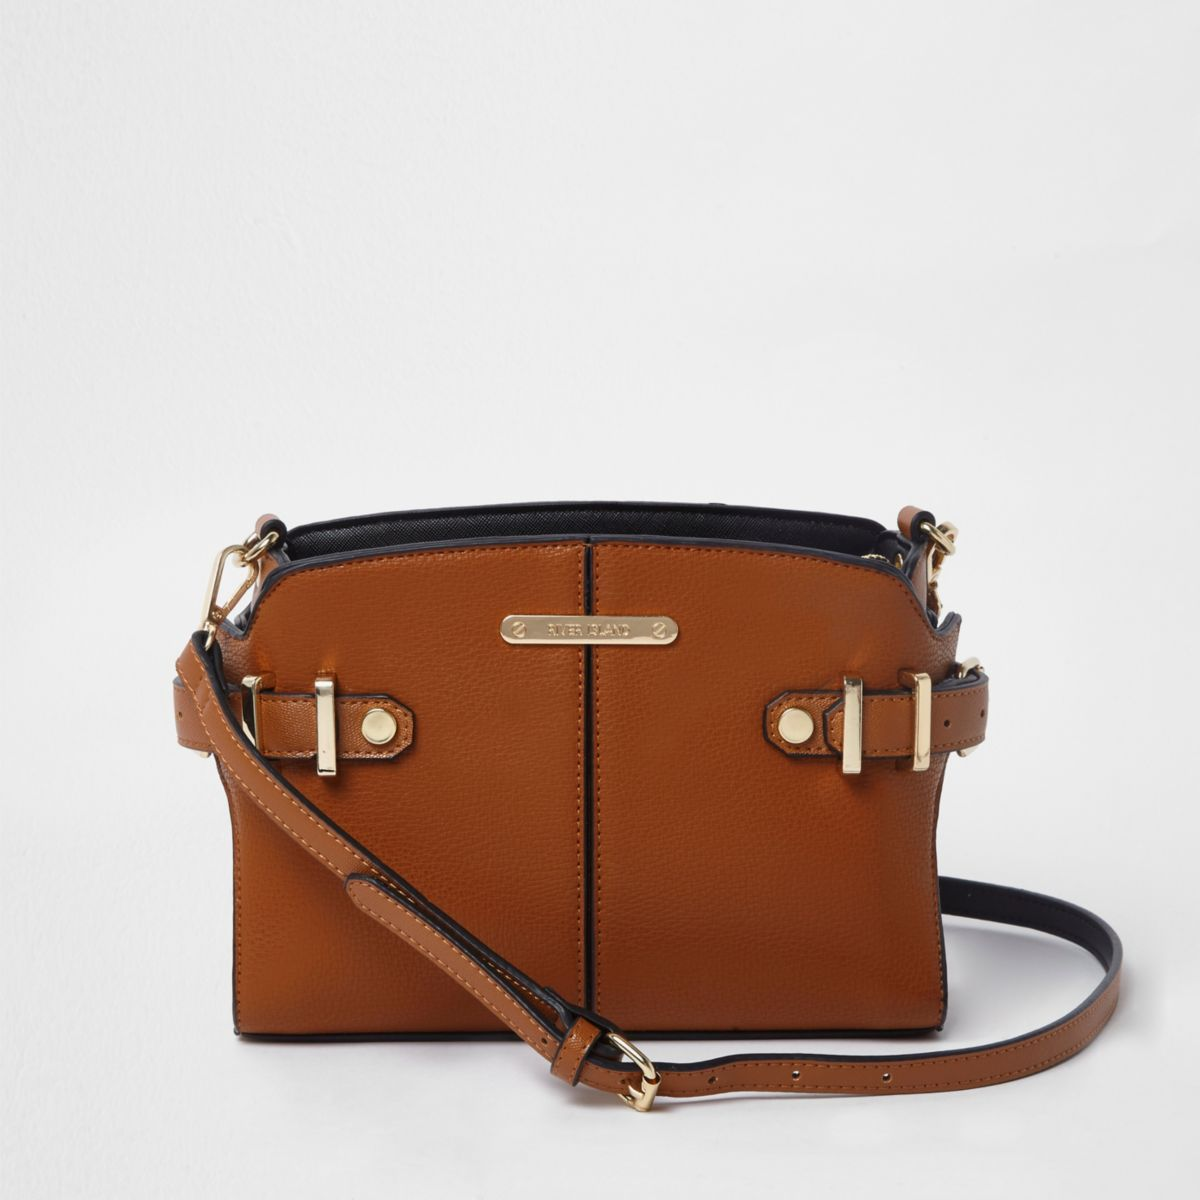 Tan brown buckle side cross body bag